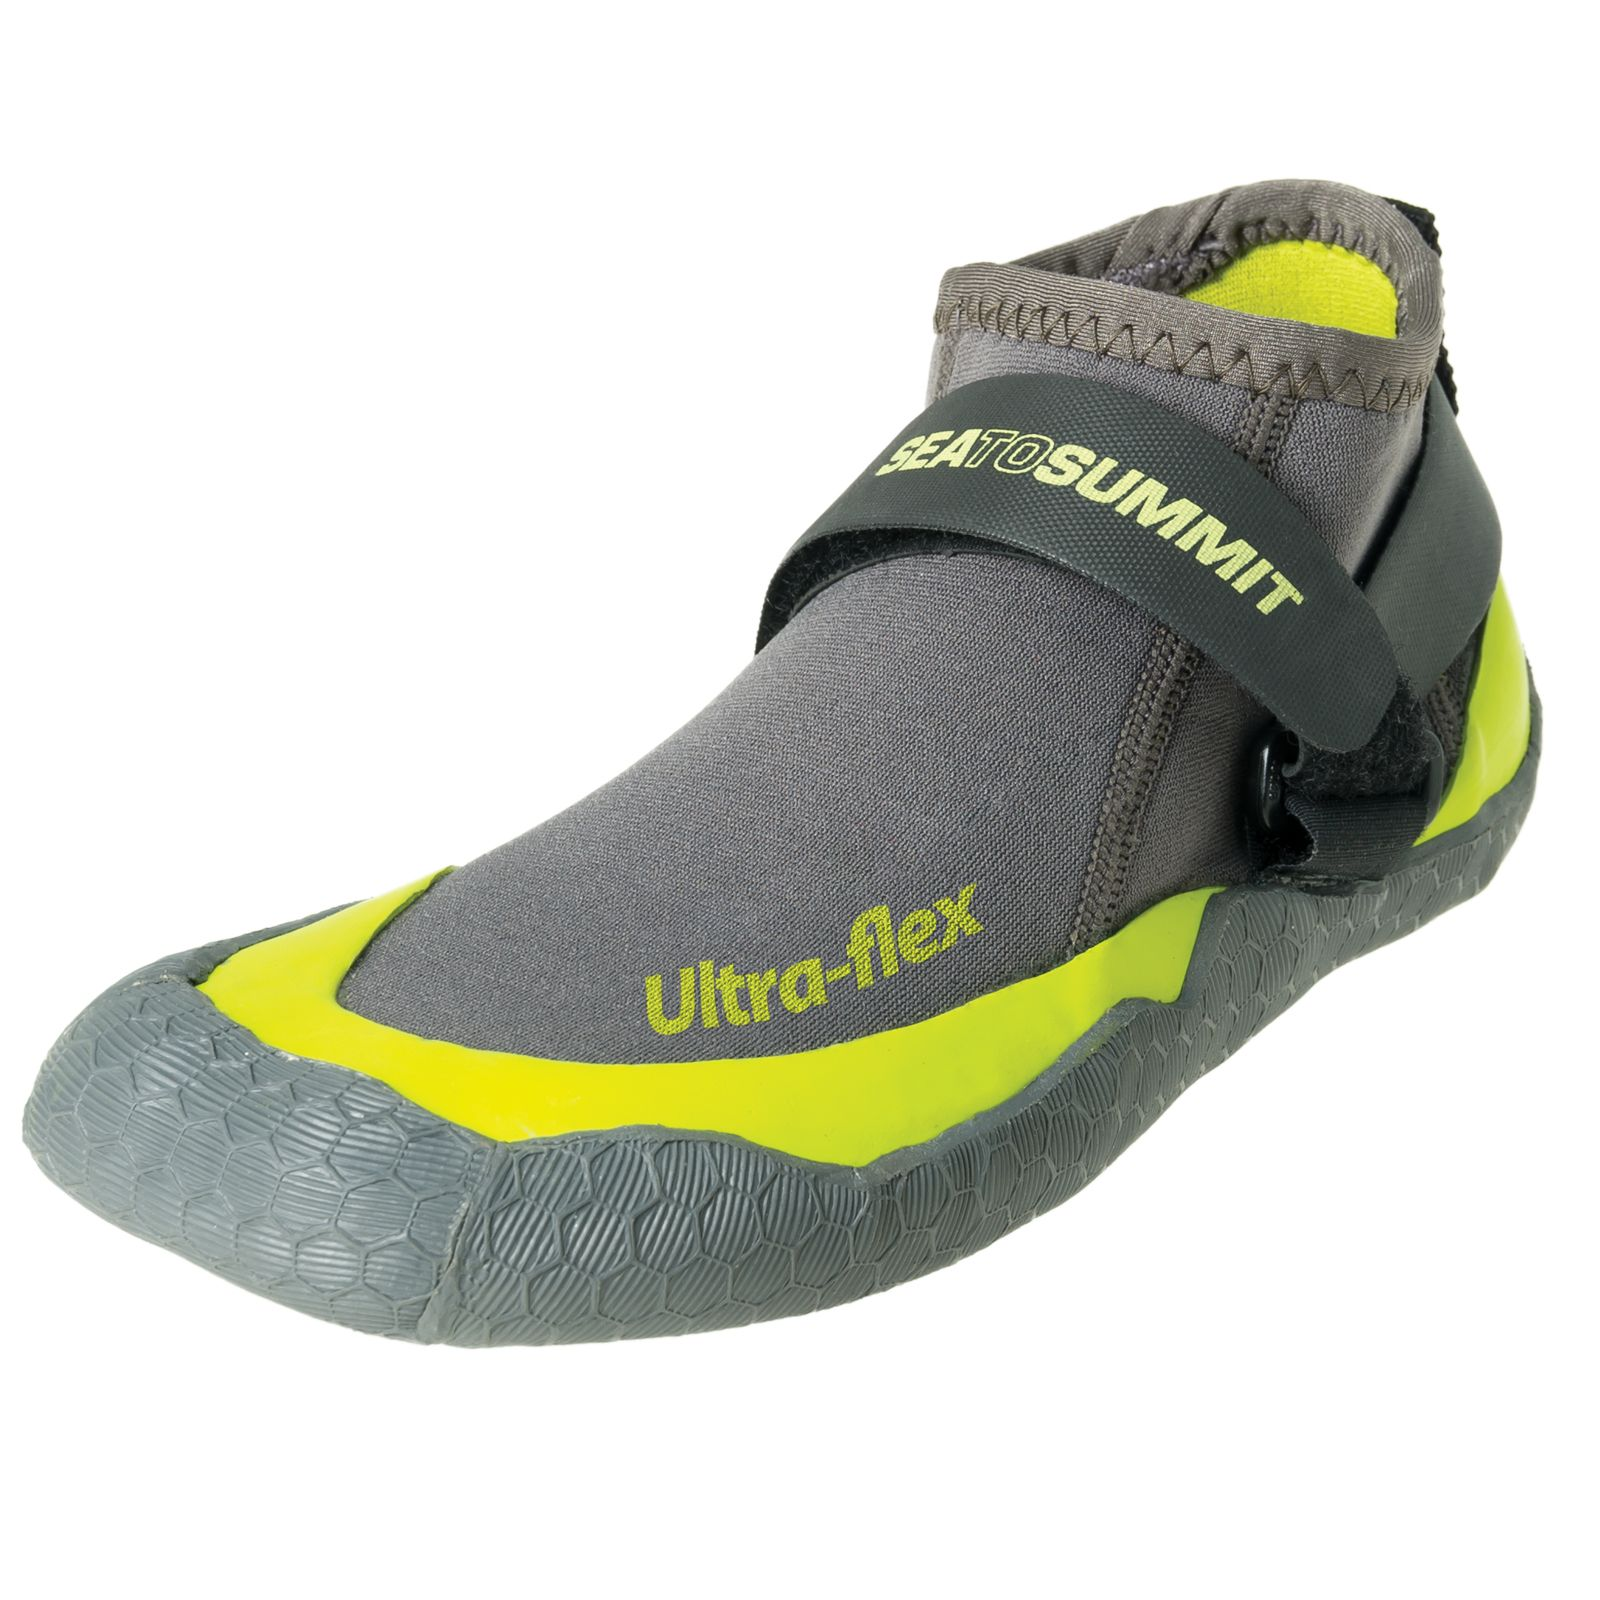 Sea to Summit l Ultra Flex Booties l Water Shoes l Kayaking Gear l ...